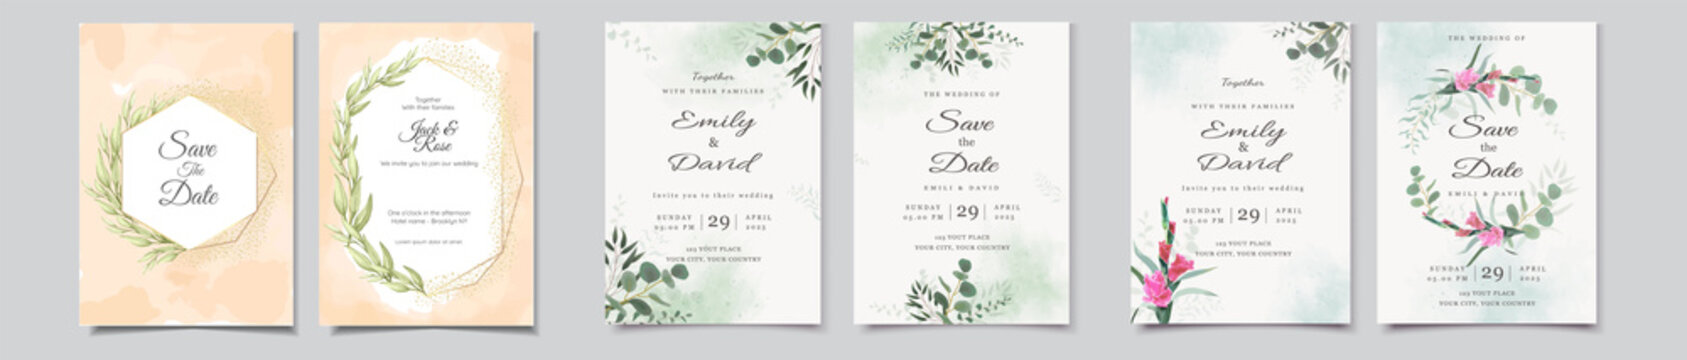 beautiful floral weeding invitation card with flower design template, beautiful vintage soft floral and leaves wedding invitation, wedding invitation cards